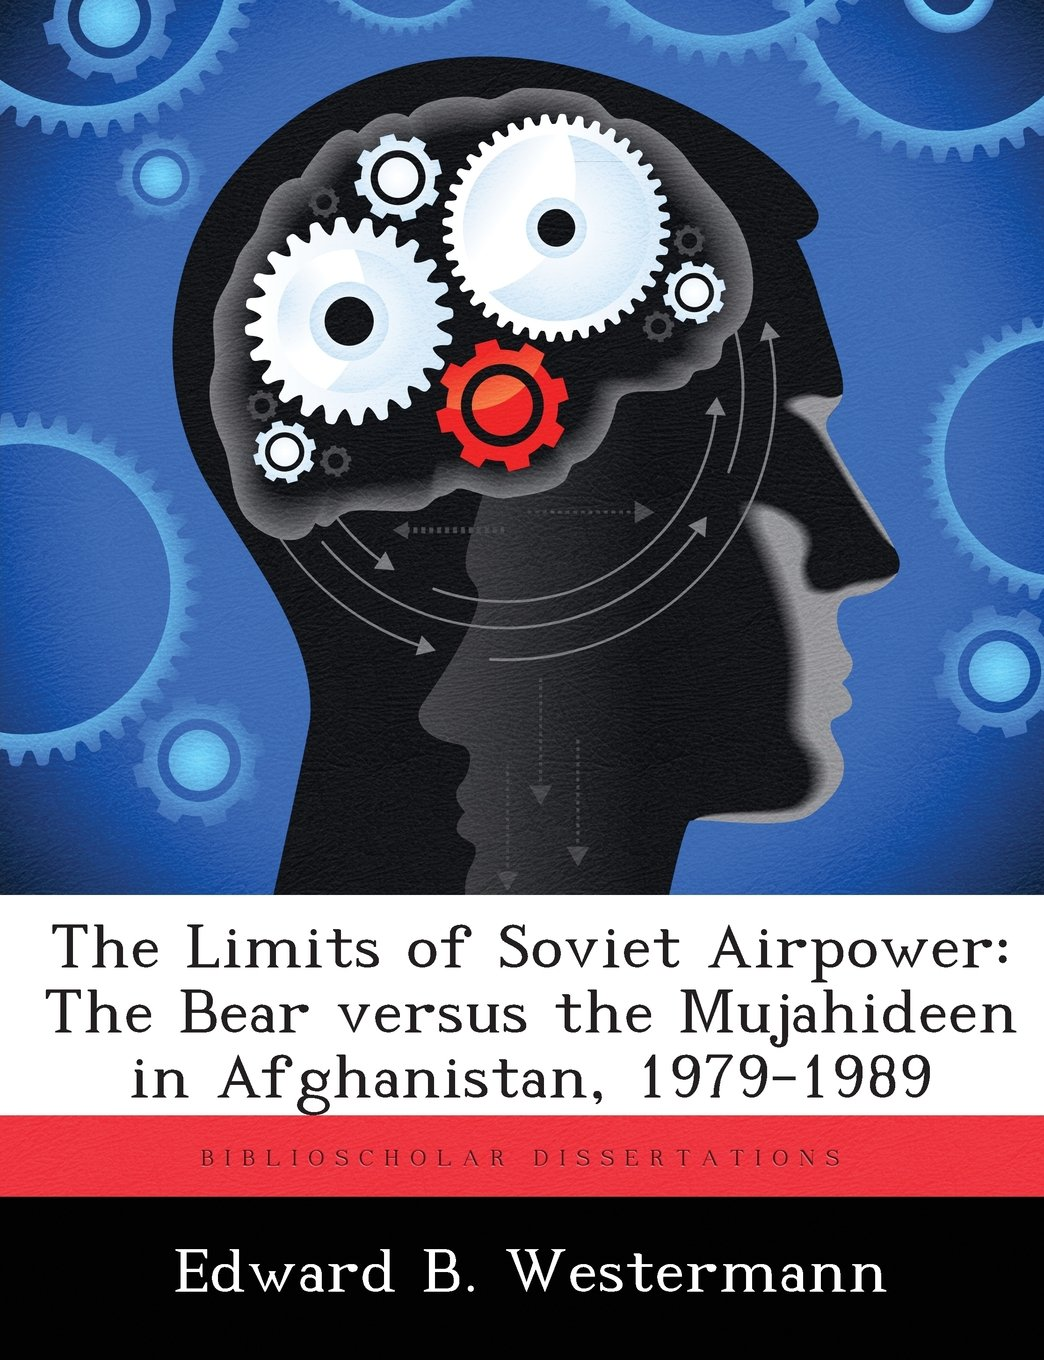 The Limits of Soviet Airpower: The Bear versus the Mujahideen in Afghanistan, 1979-1989 pdf